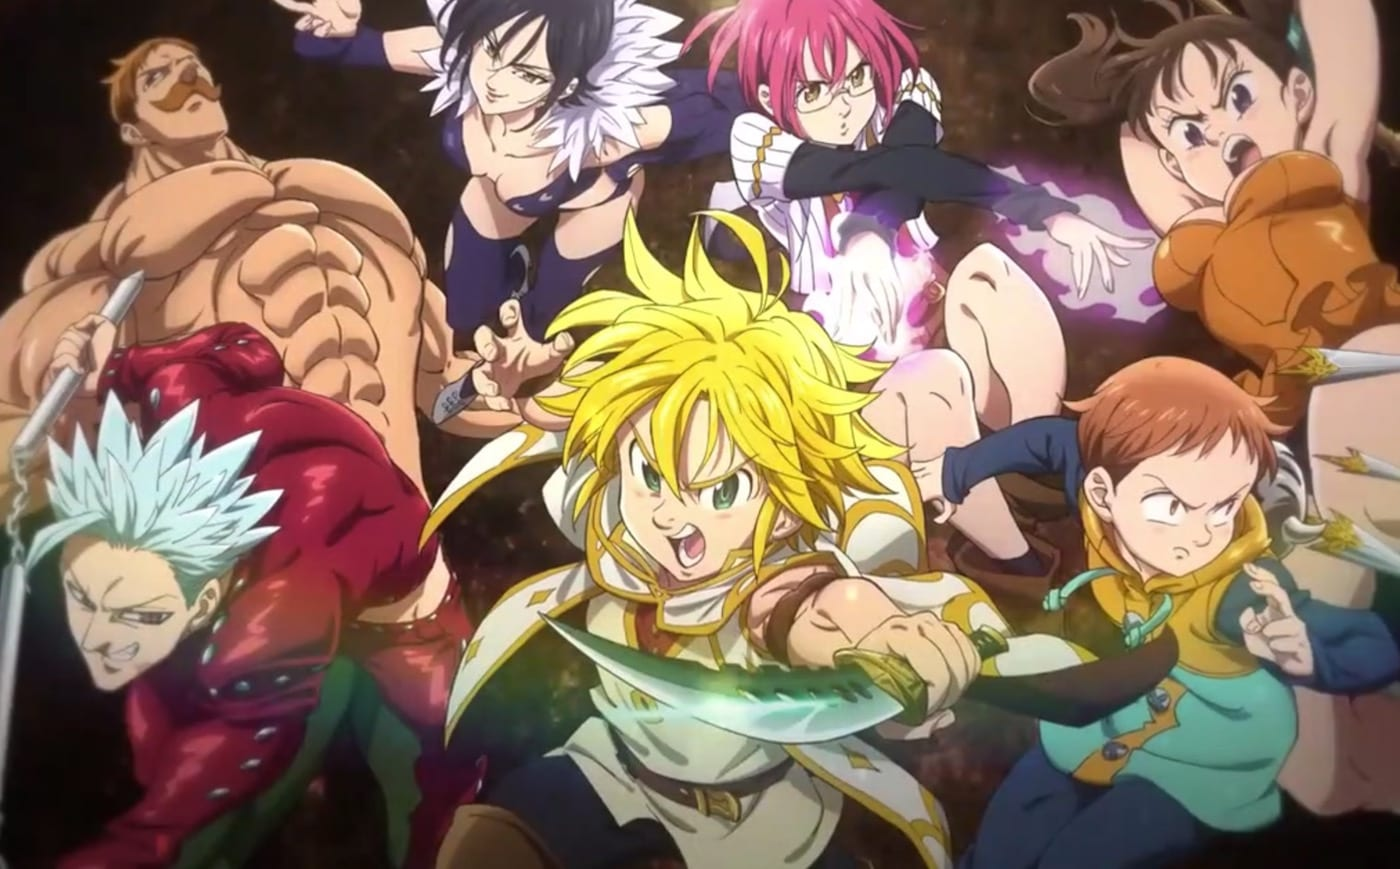 Nanatsu no Taizai Season 4 episode 1